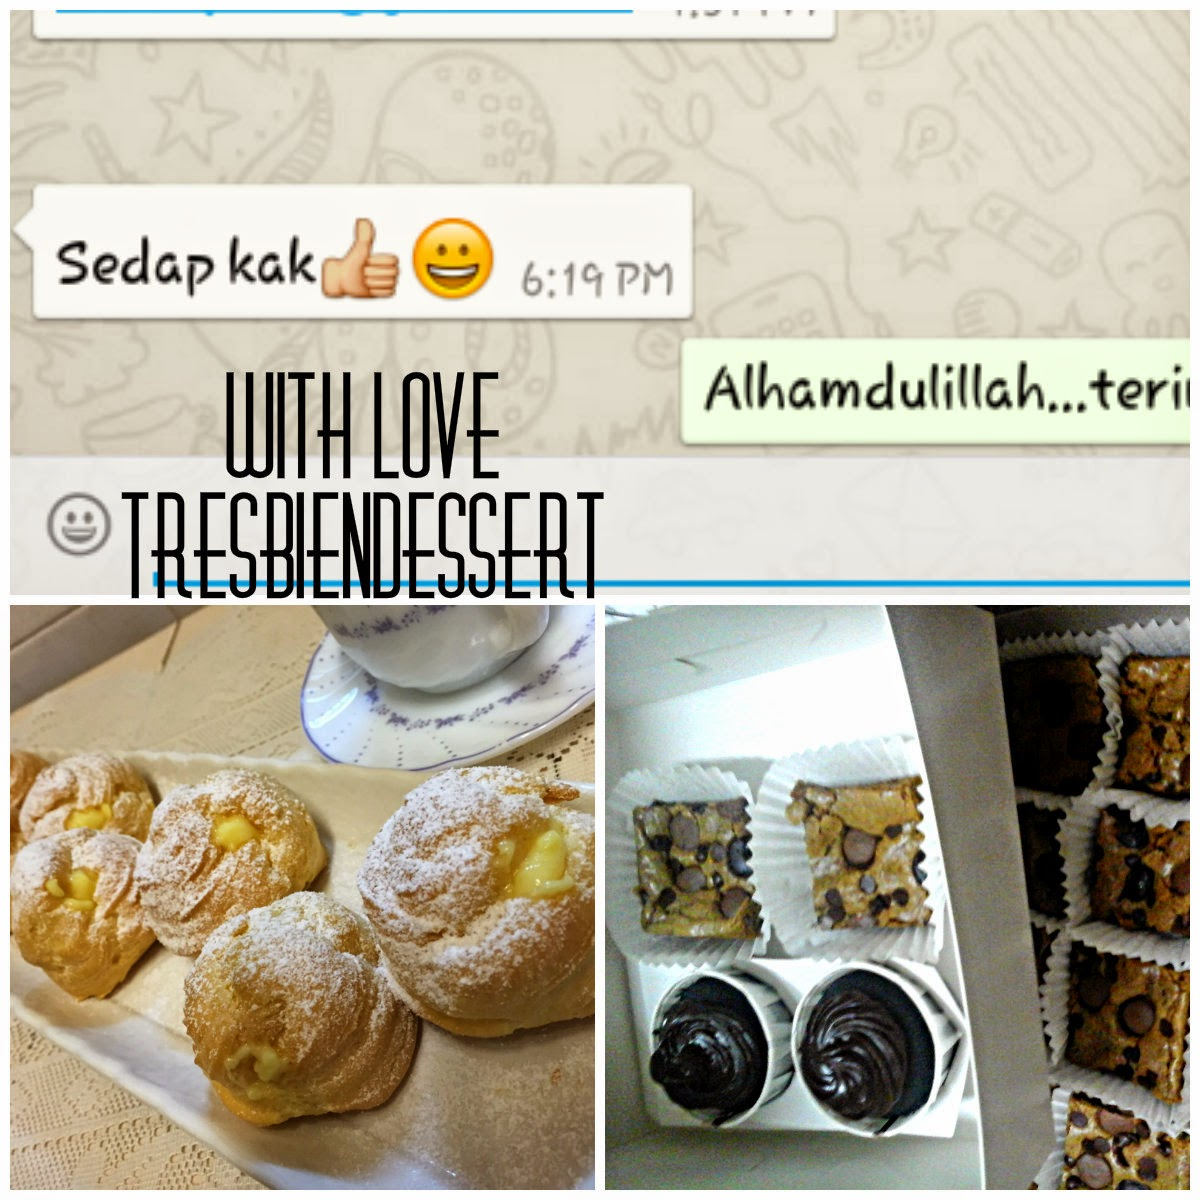 To order Cream puff, Choux Ring, Pate A Choux, Creme Patissiere, Petit Choux, Profiterole, Paris Brest, Choux a la Creme, Croquembouche, Petit Fur, Religieuse, Gateau Saint Honore, contact Hamidah at 016-9150772, Area Bukit Jalil, IOI Mall, Puchong, Bandar Kinrara